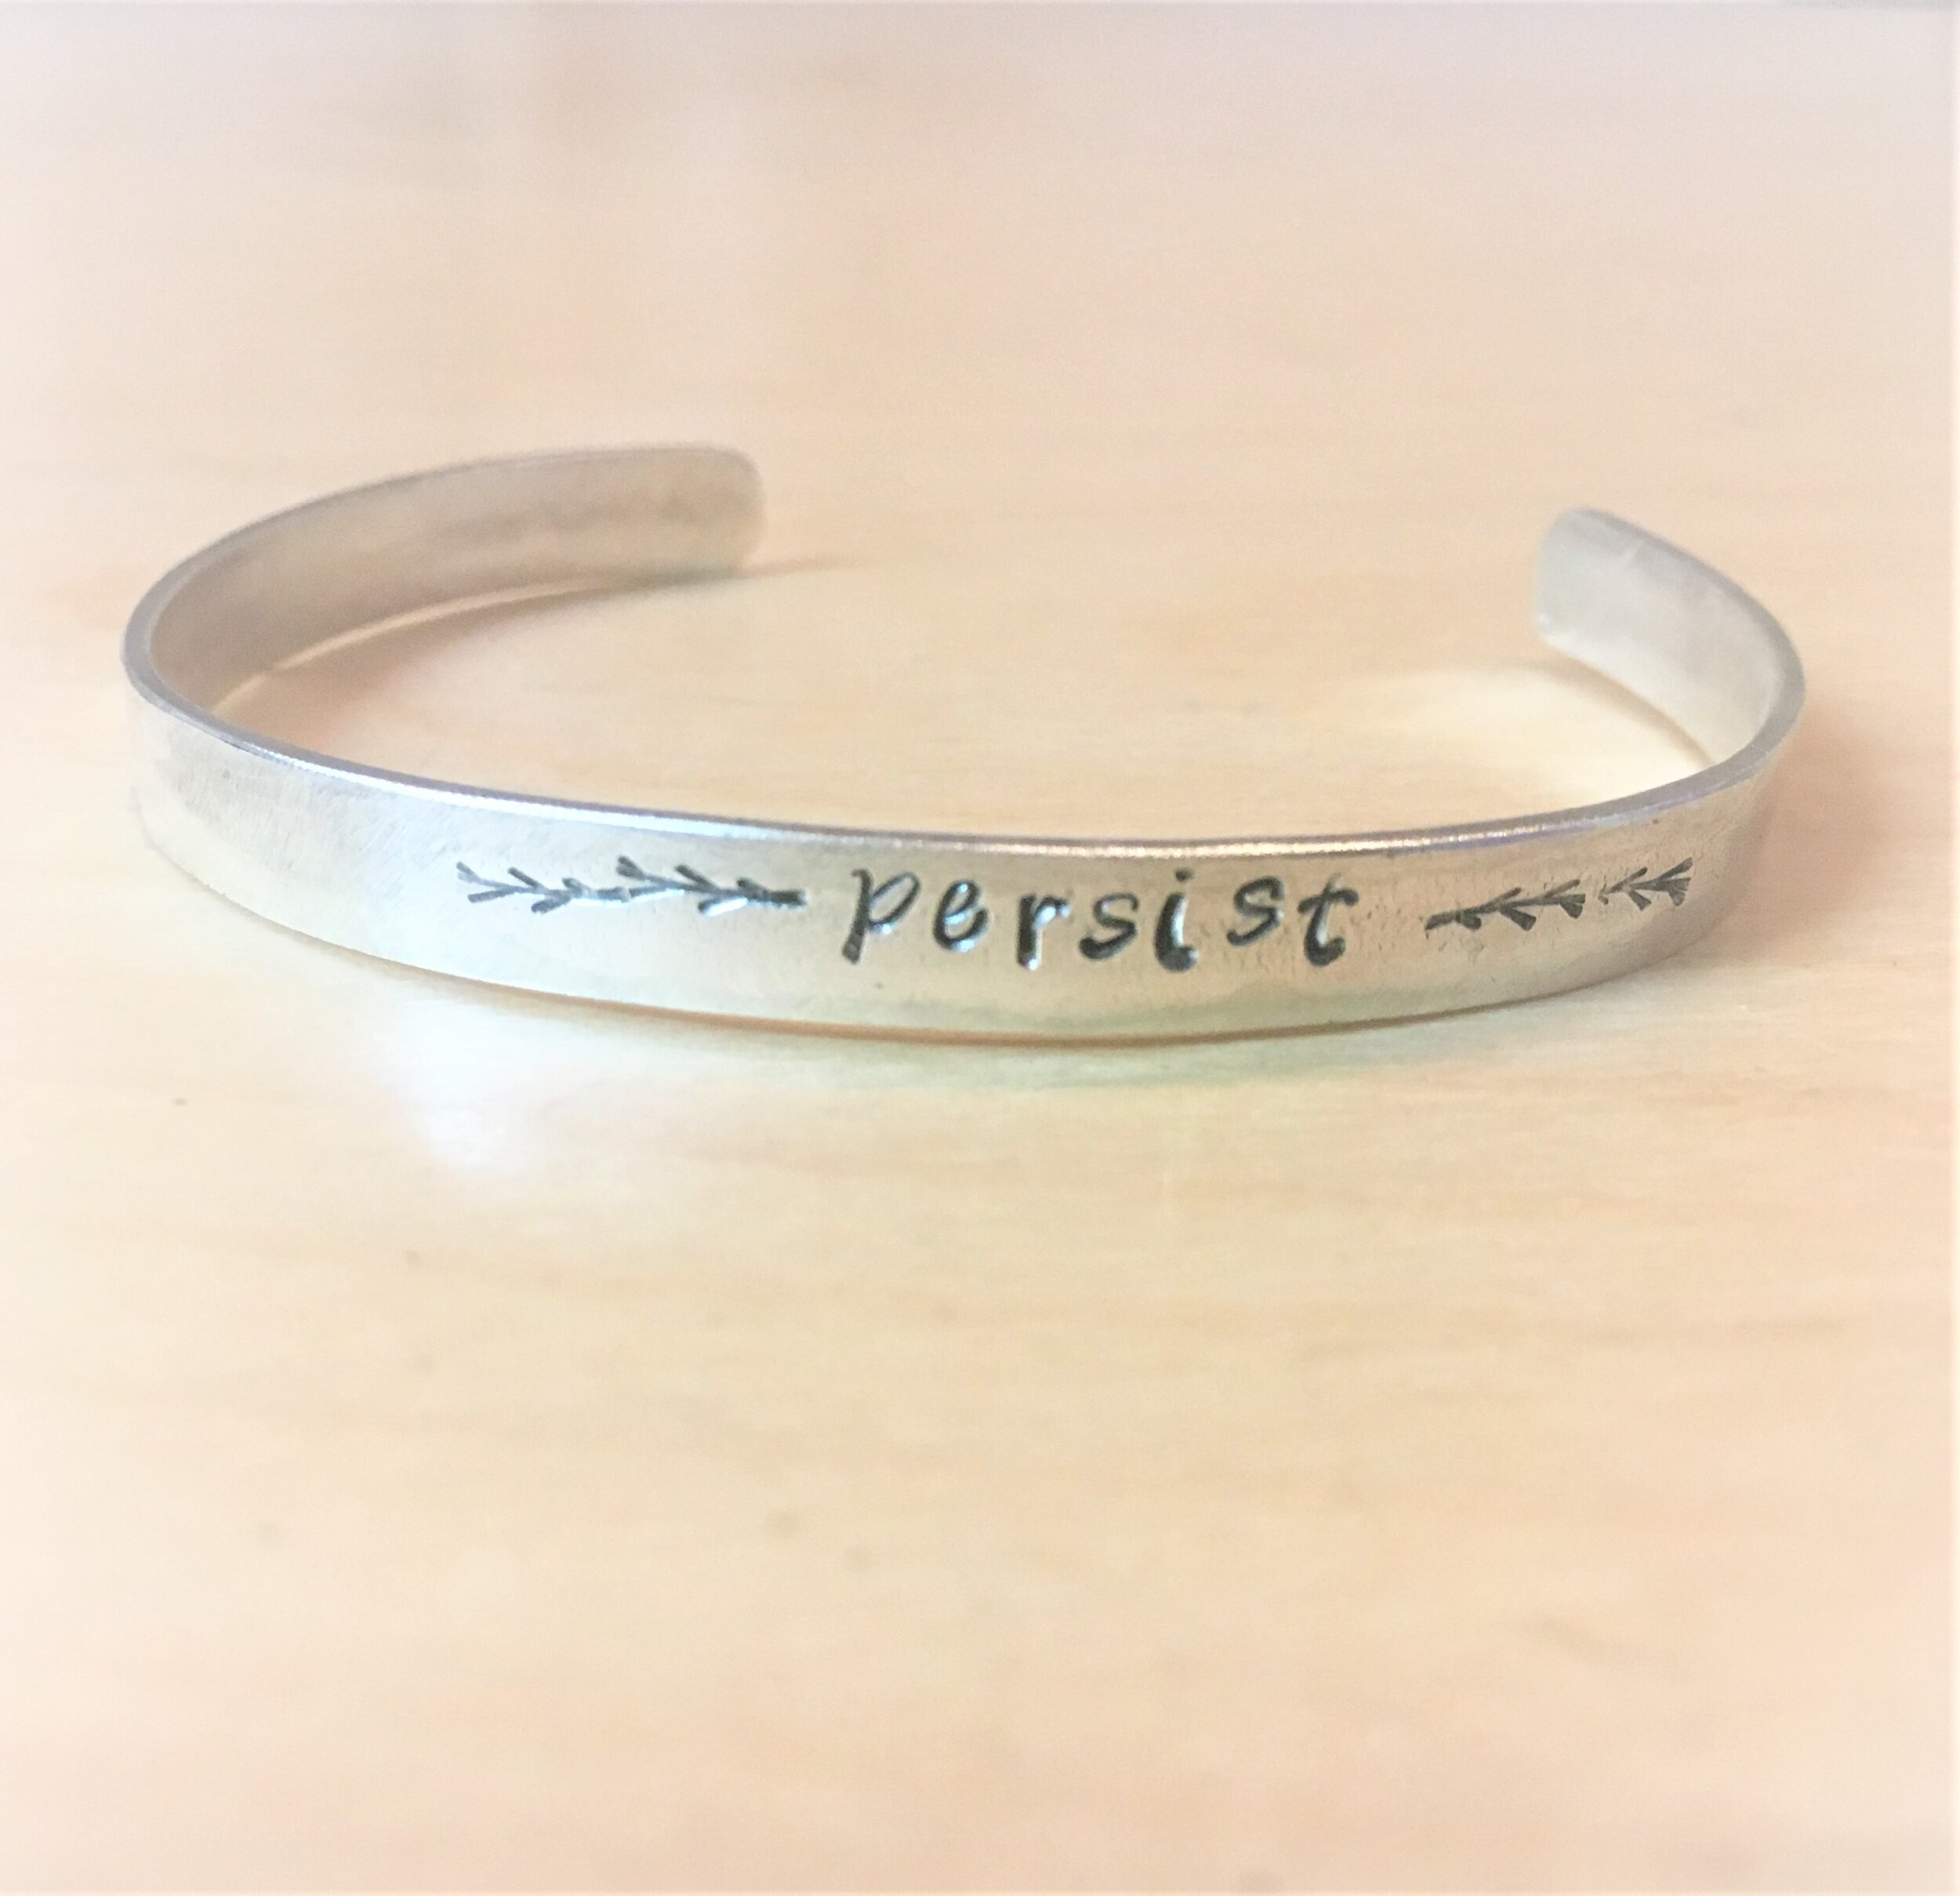 cuff bracelet with the word 'persist' stamped into it and some symbols of branches Bracelet is sterling silver